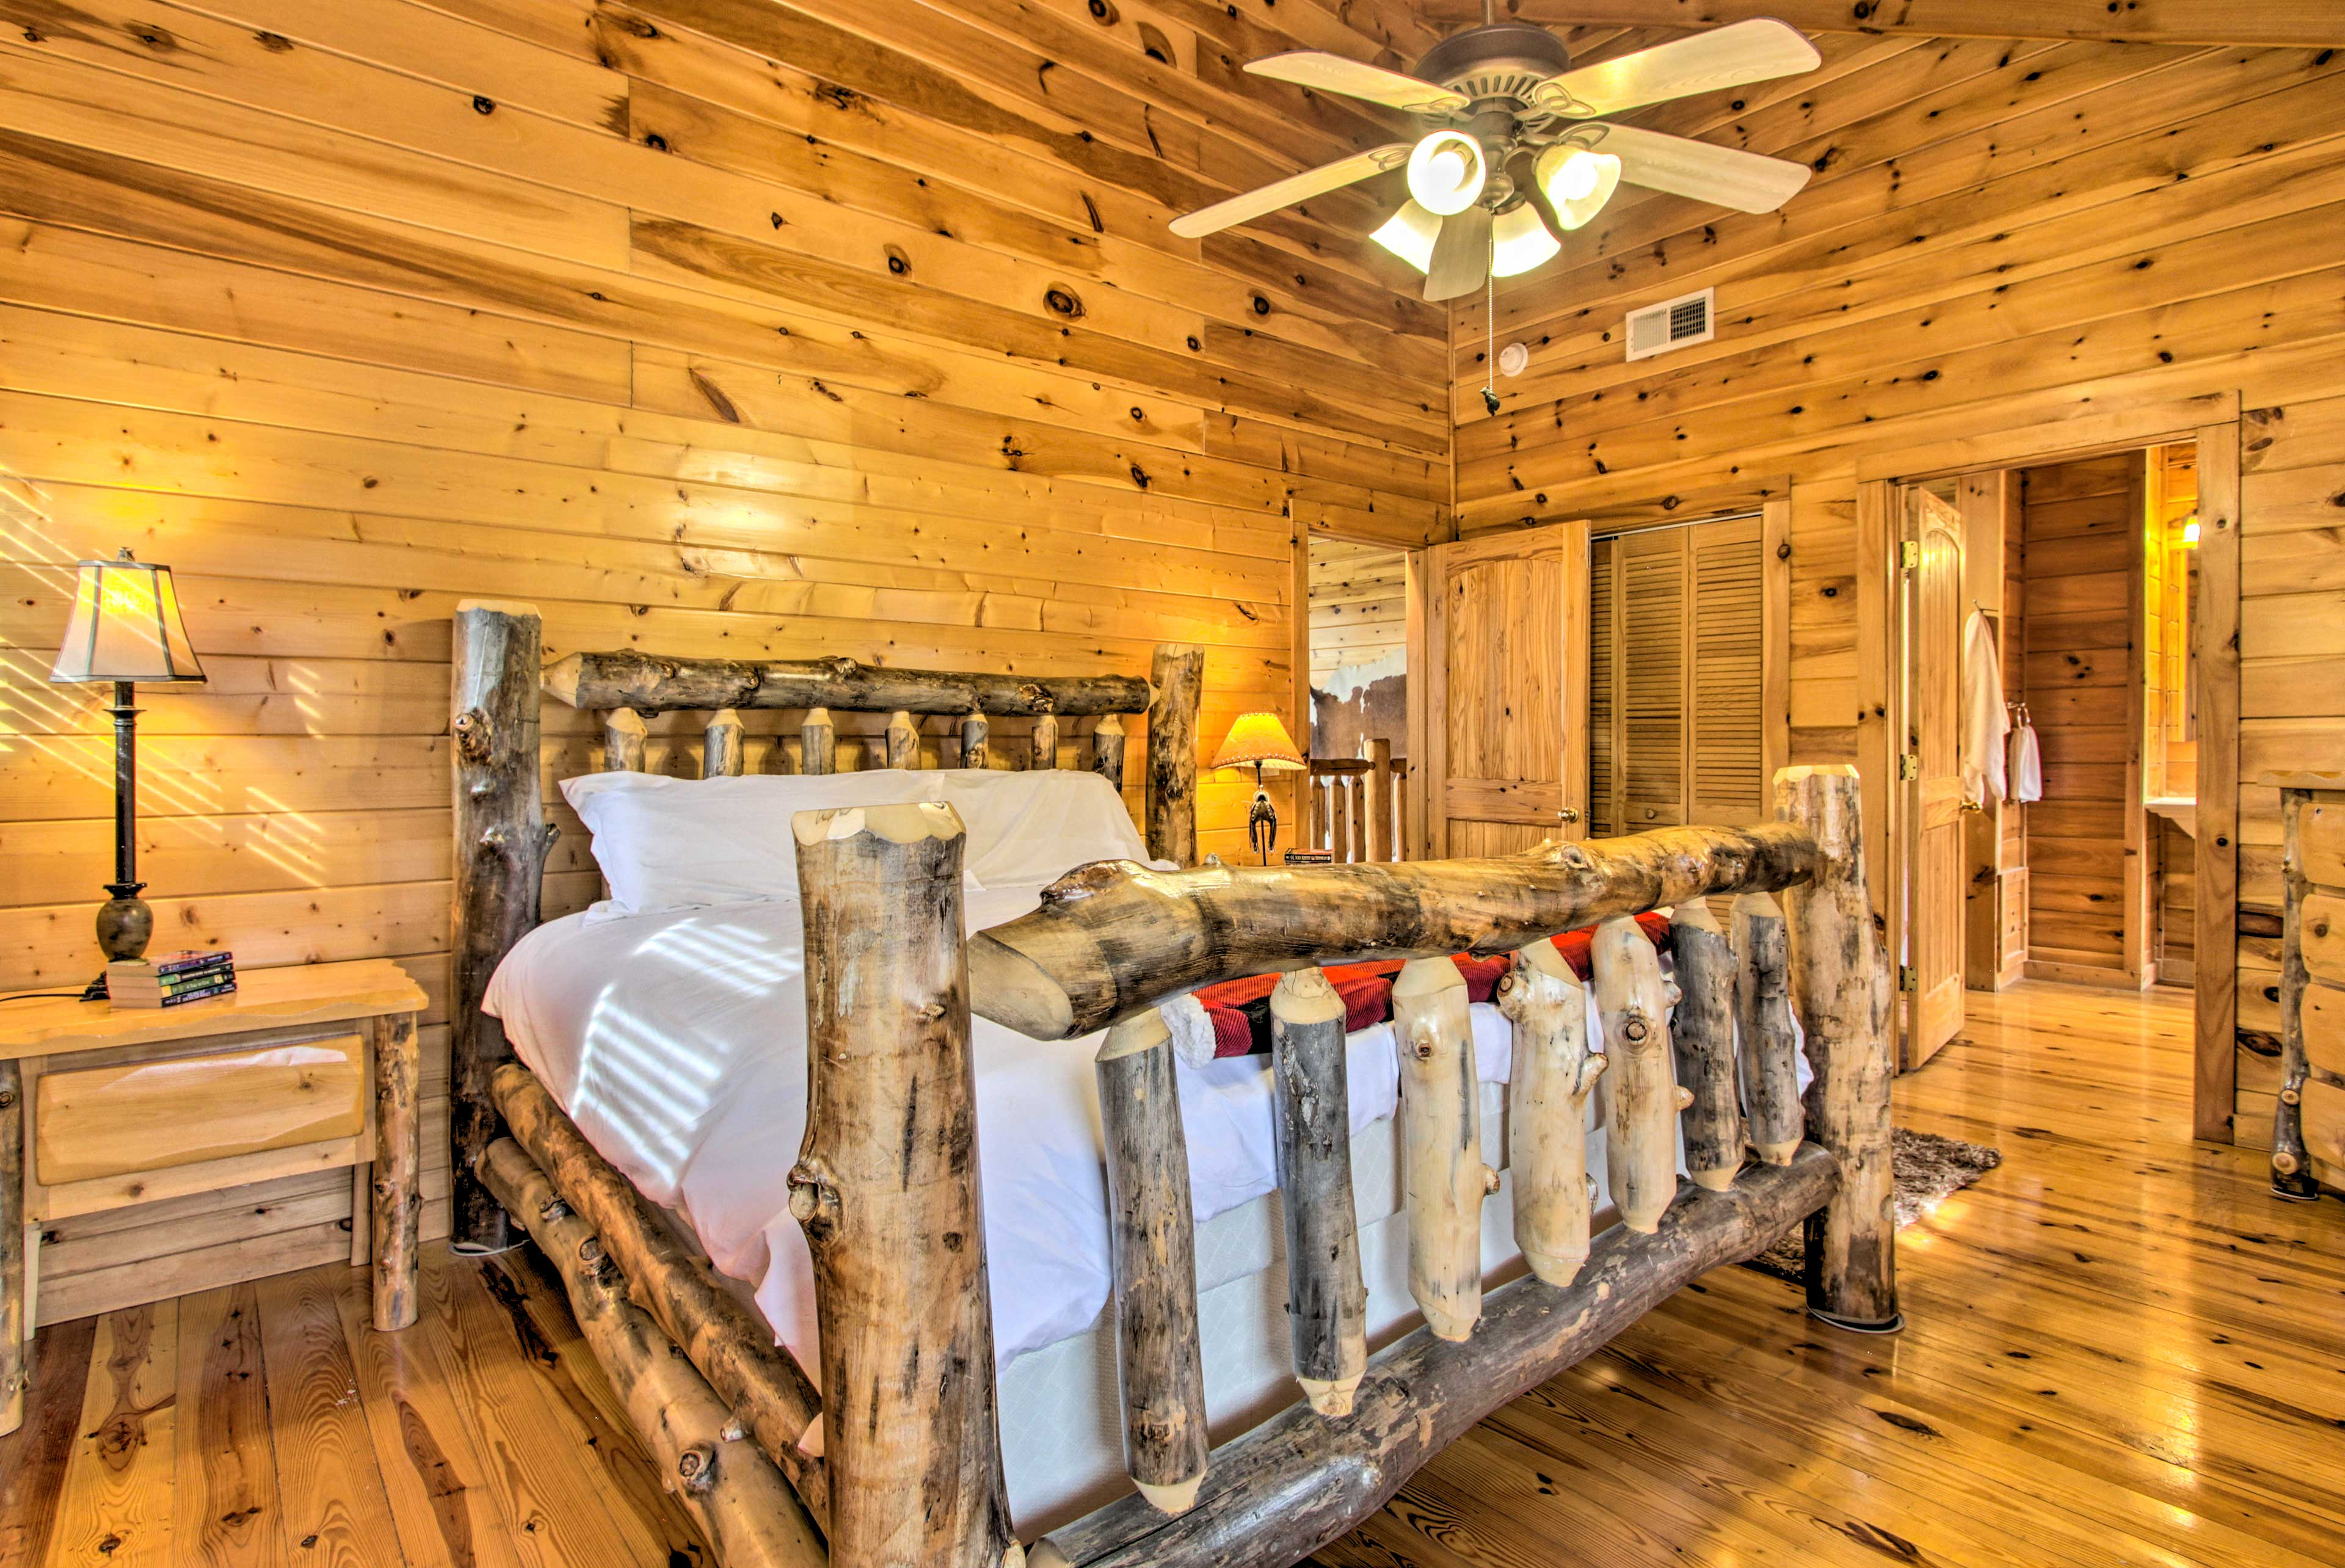 The second master bedroom is located upstairs and also offers a king-sized bed.